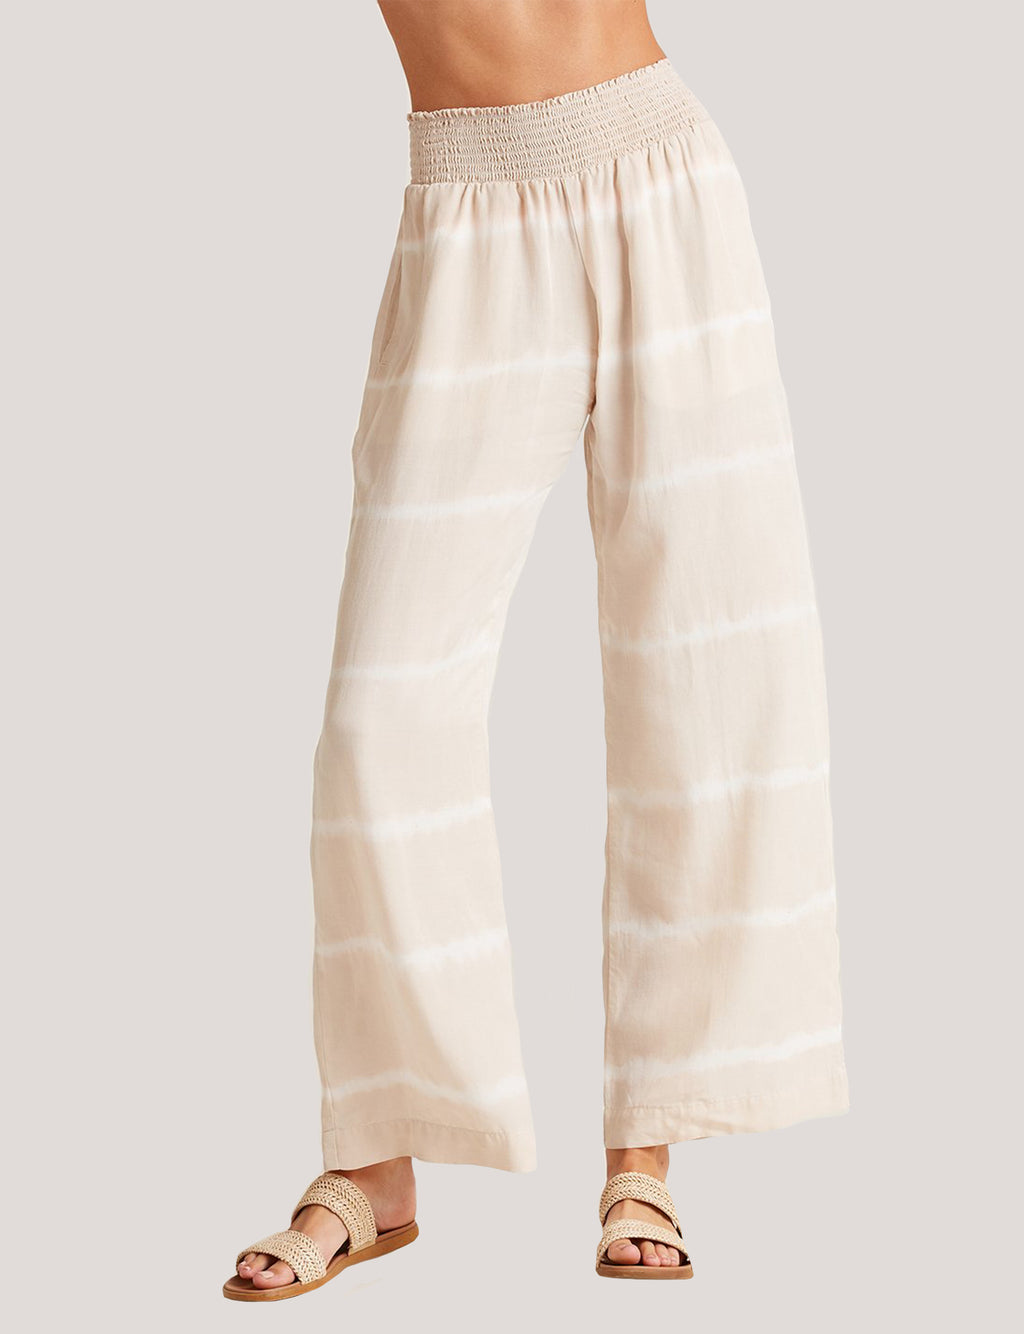 Bella Dahl Smocked Waist Wide Leg Pant in Safari Khaki